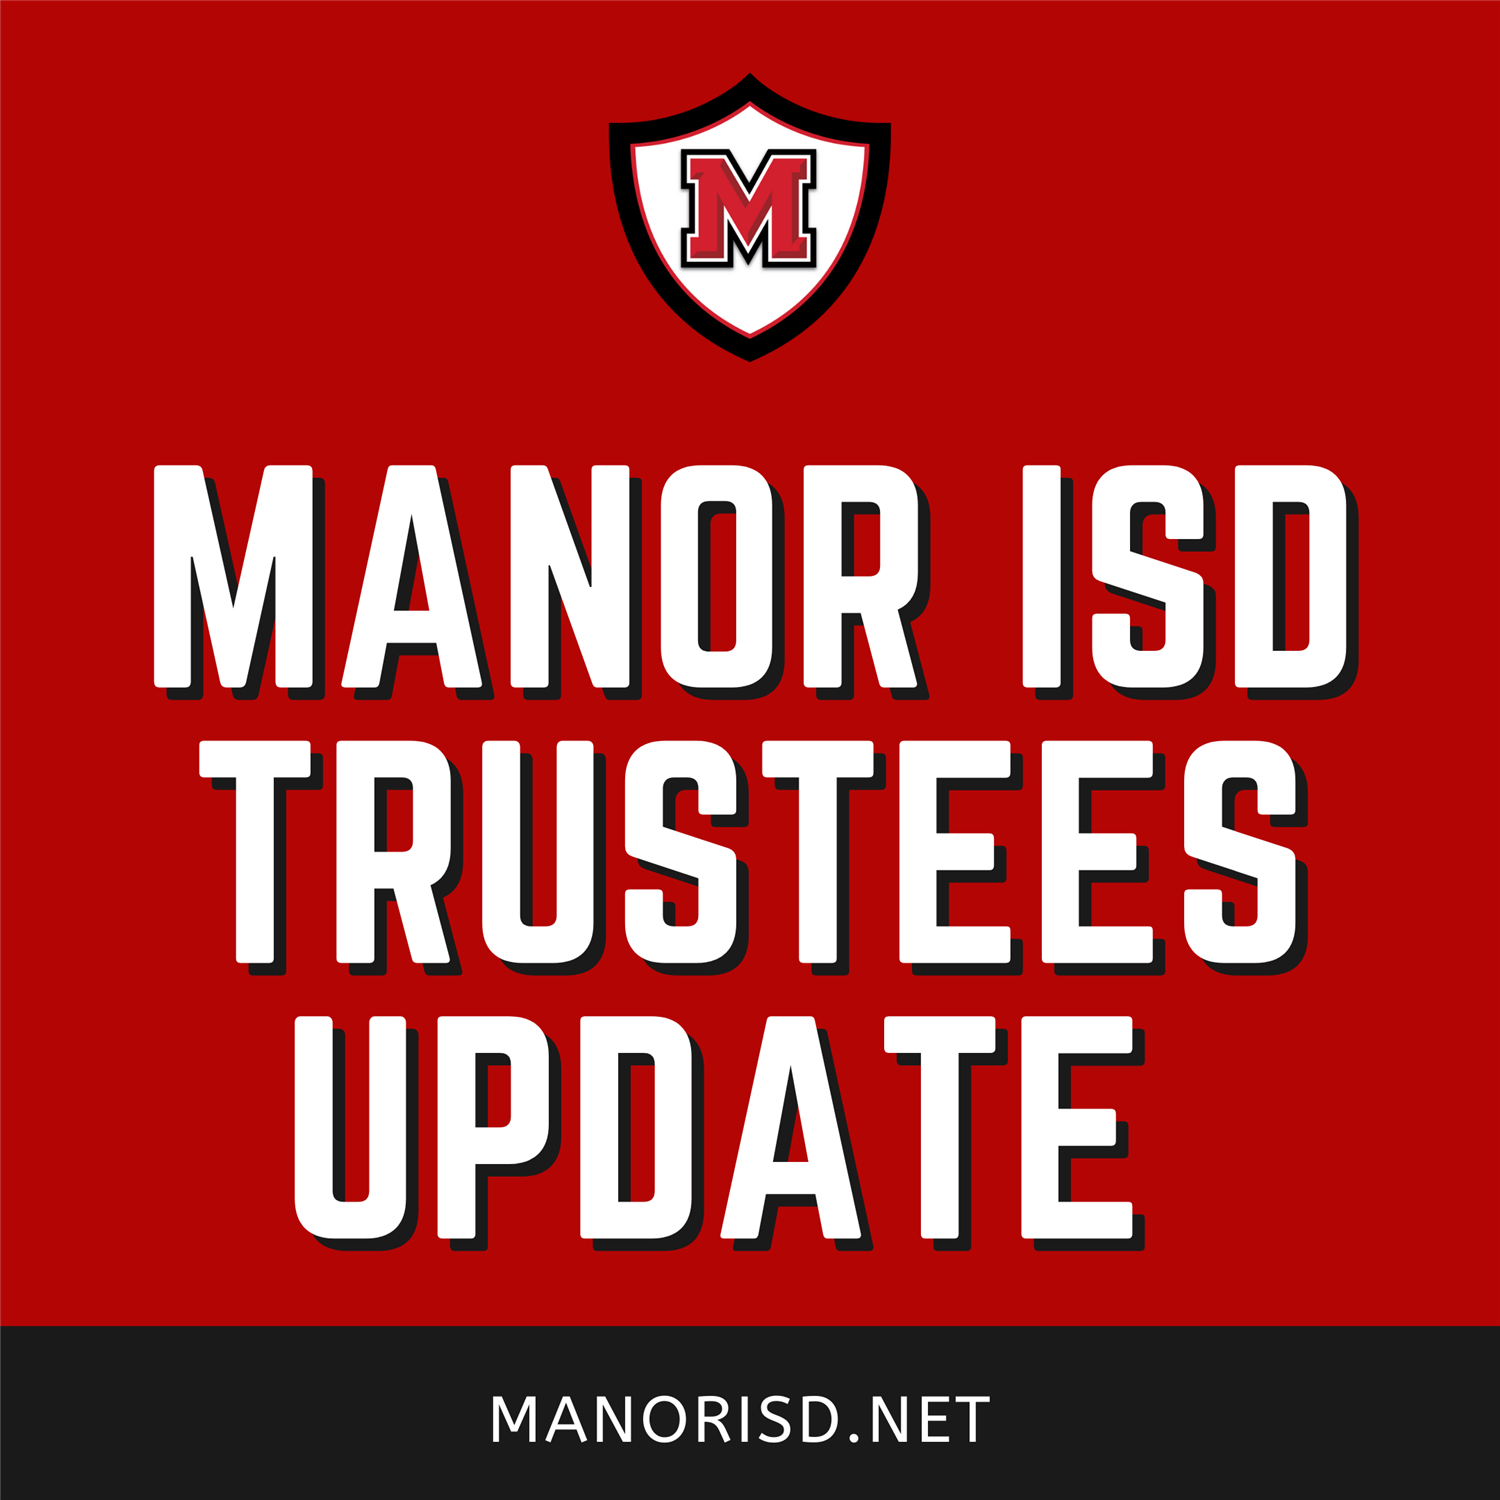 January 11, 2021 Special Called Board Meeting of the Manor ISD Board of Trustees